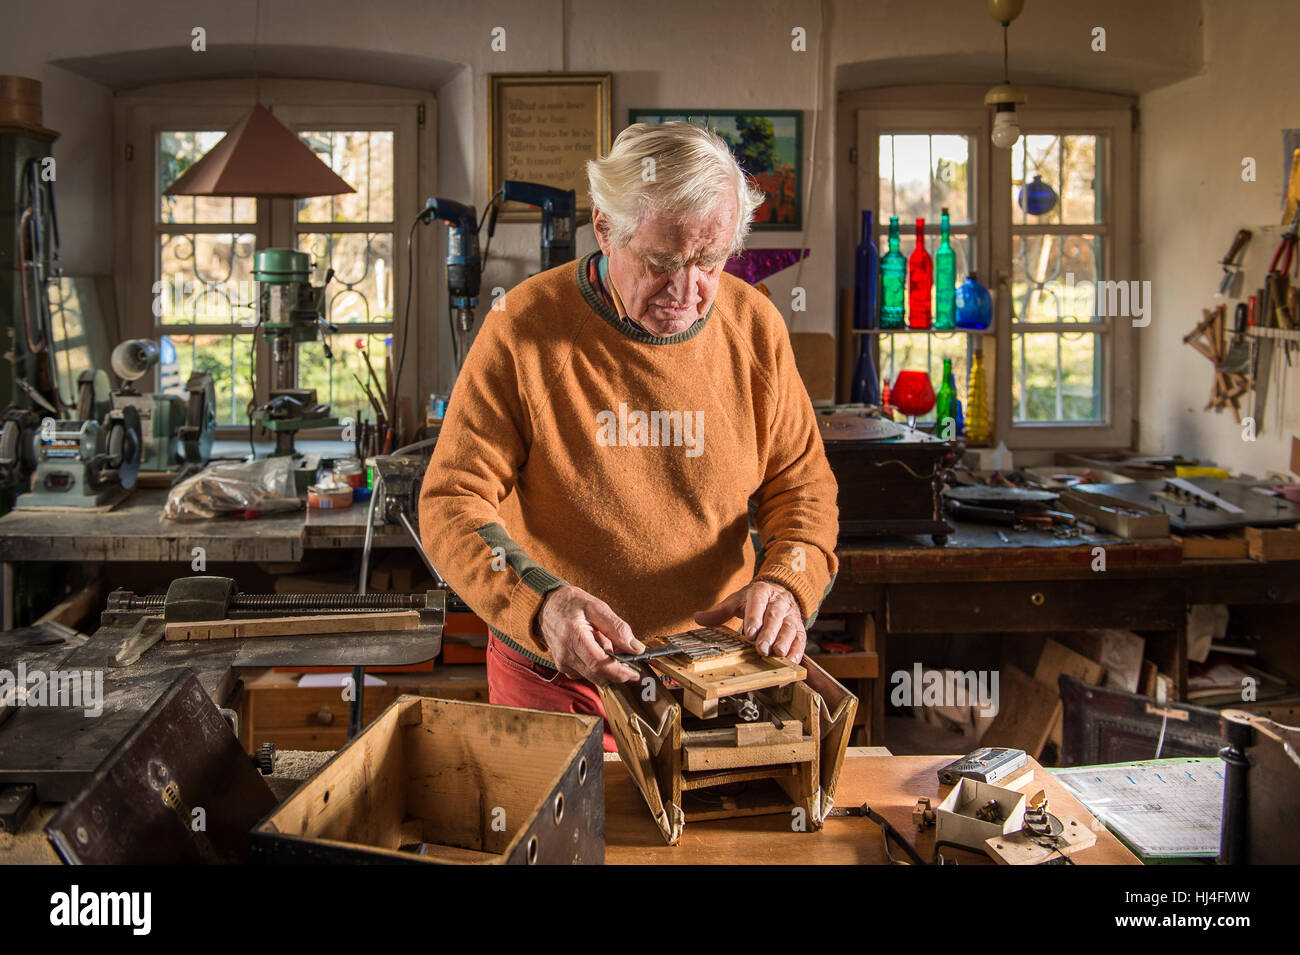 Barrel organ builder, workshop, man puts sound post between bellows, Grassau, Upper Bavaria, Bavaria, Germany - Stock Image